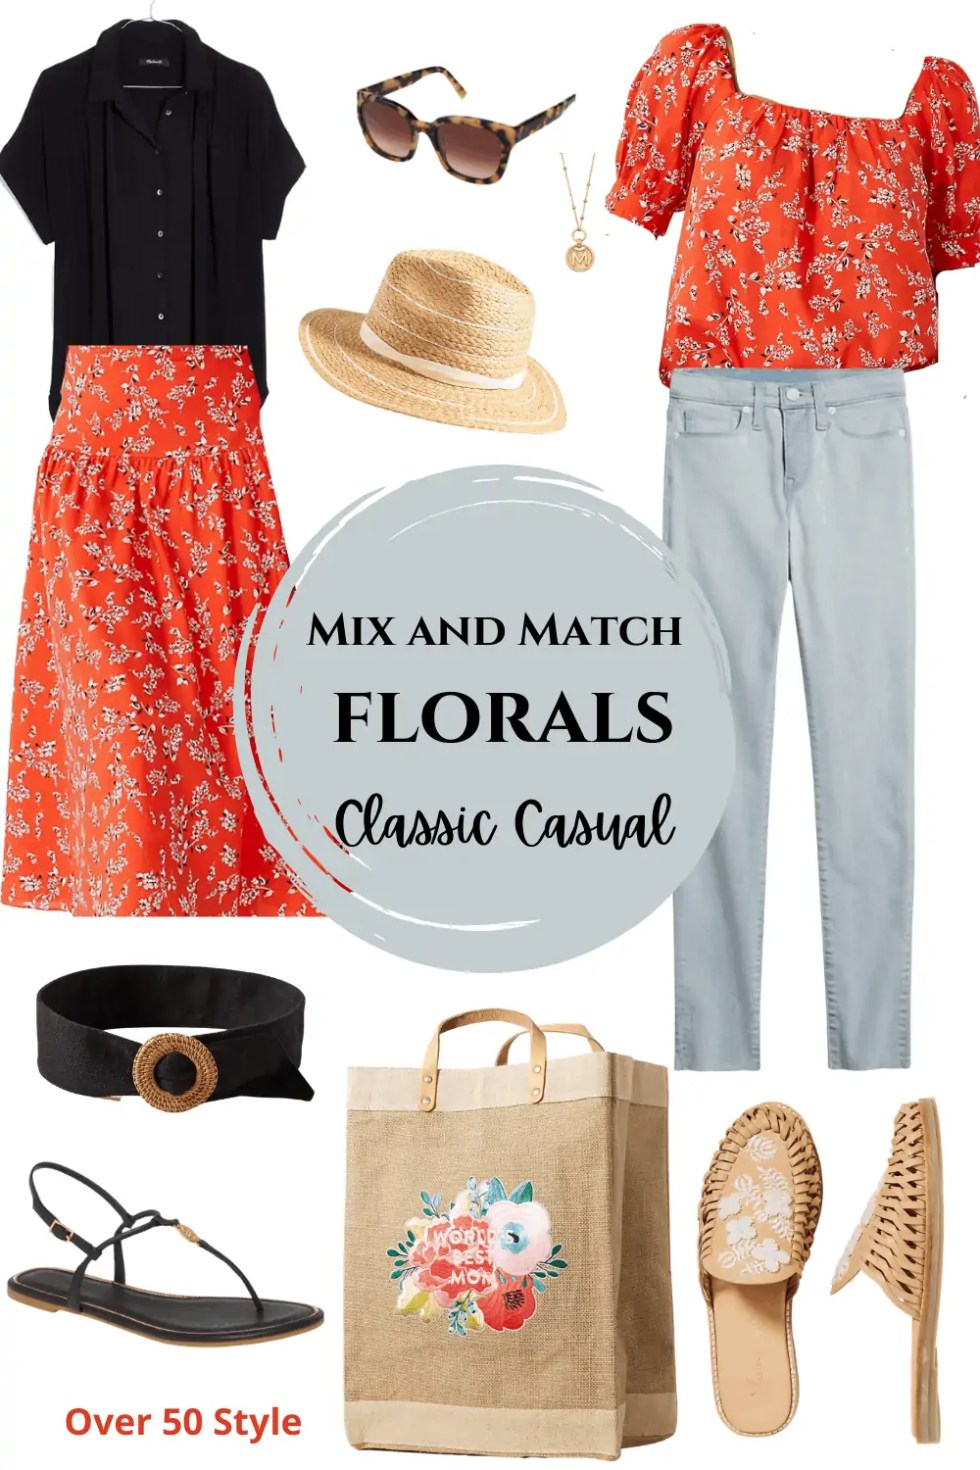 Over 50 floral outfit